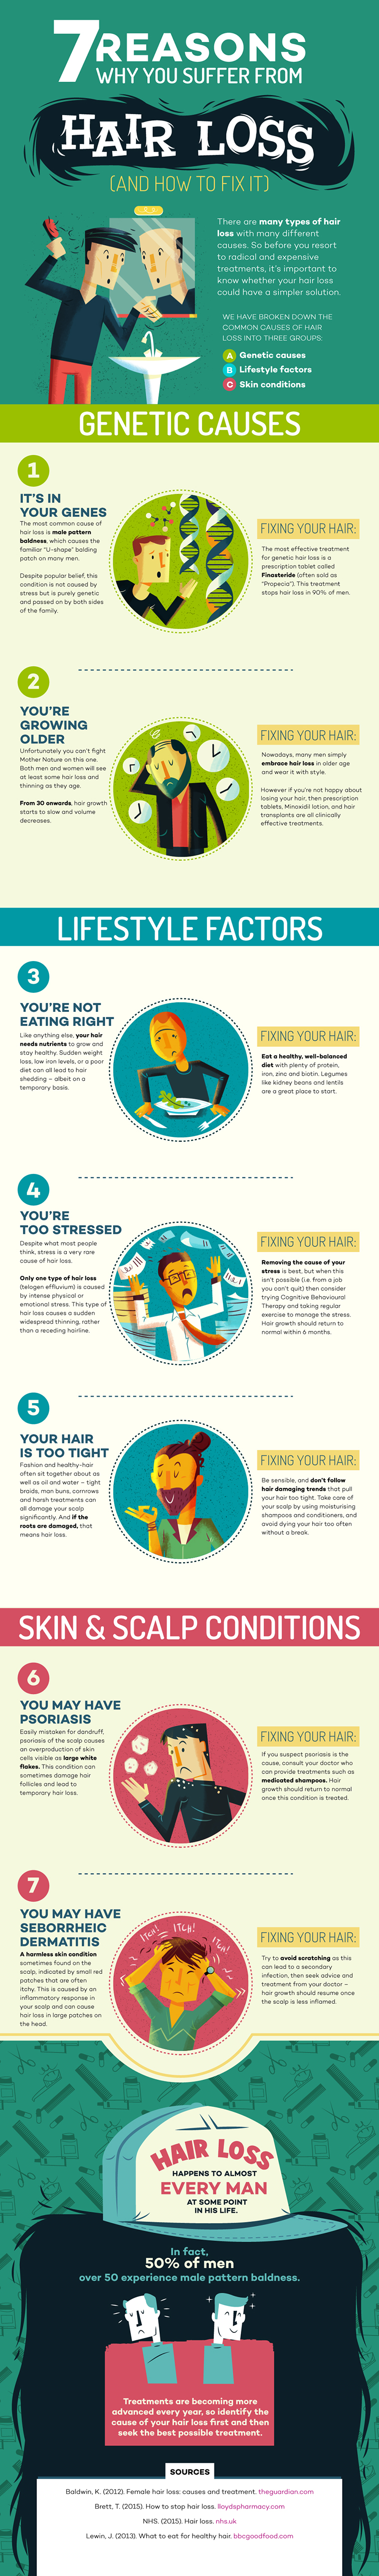 7-male-hair-loss-causes-and-how-to-fix-them-infographic